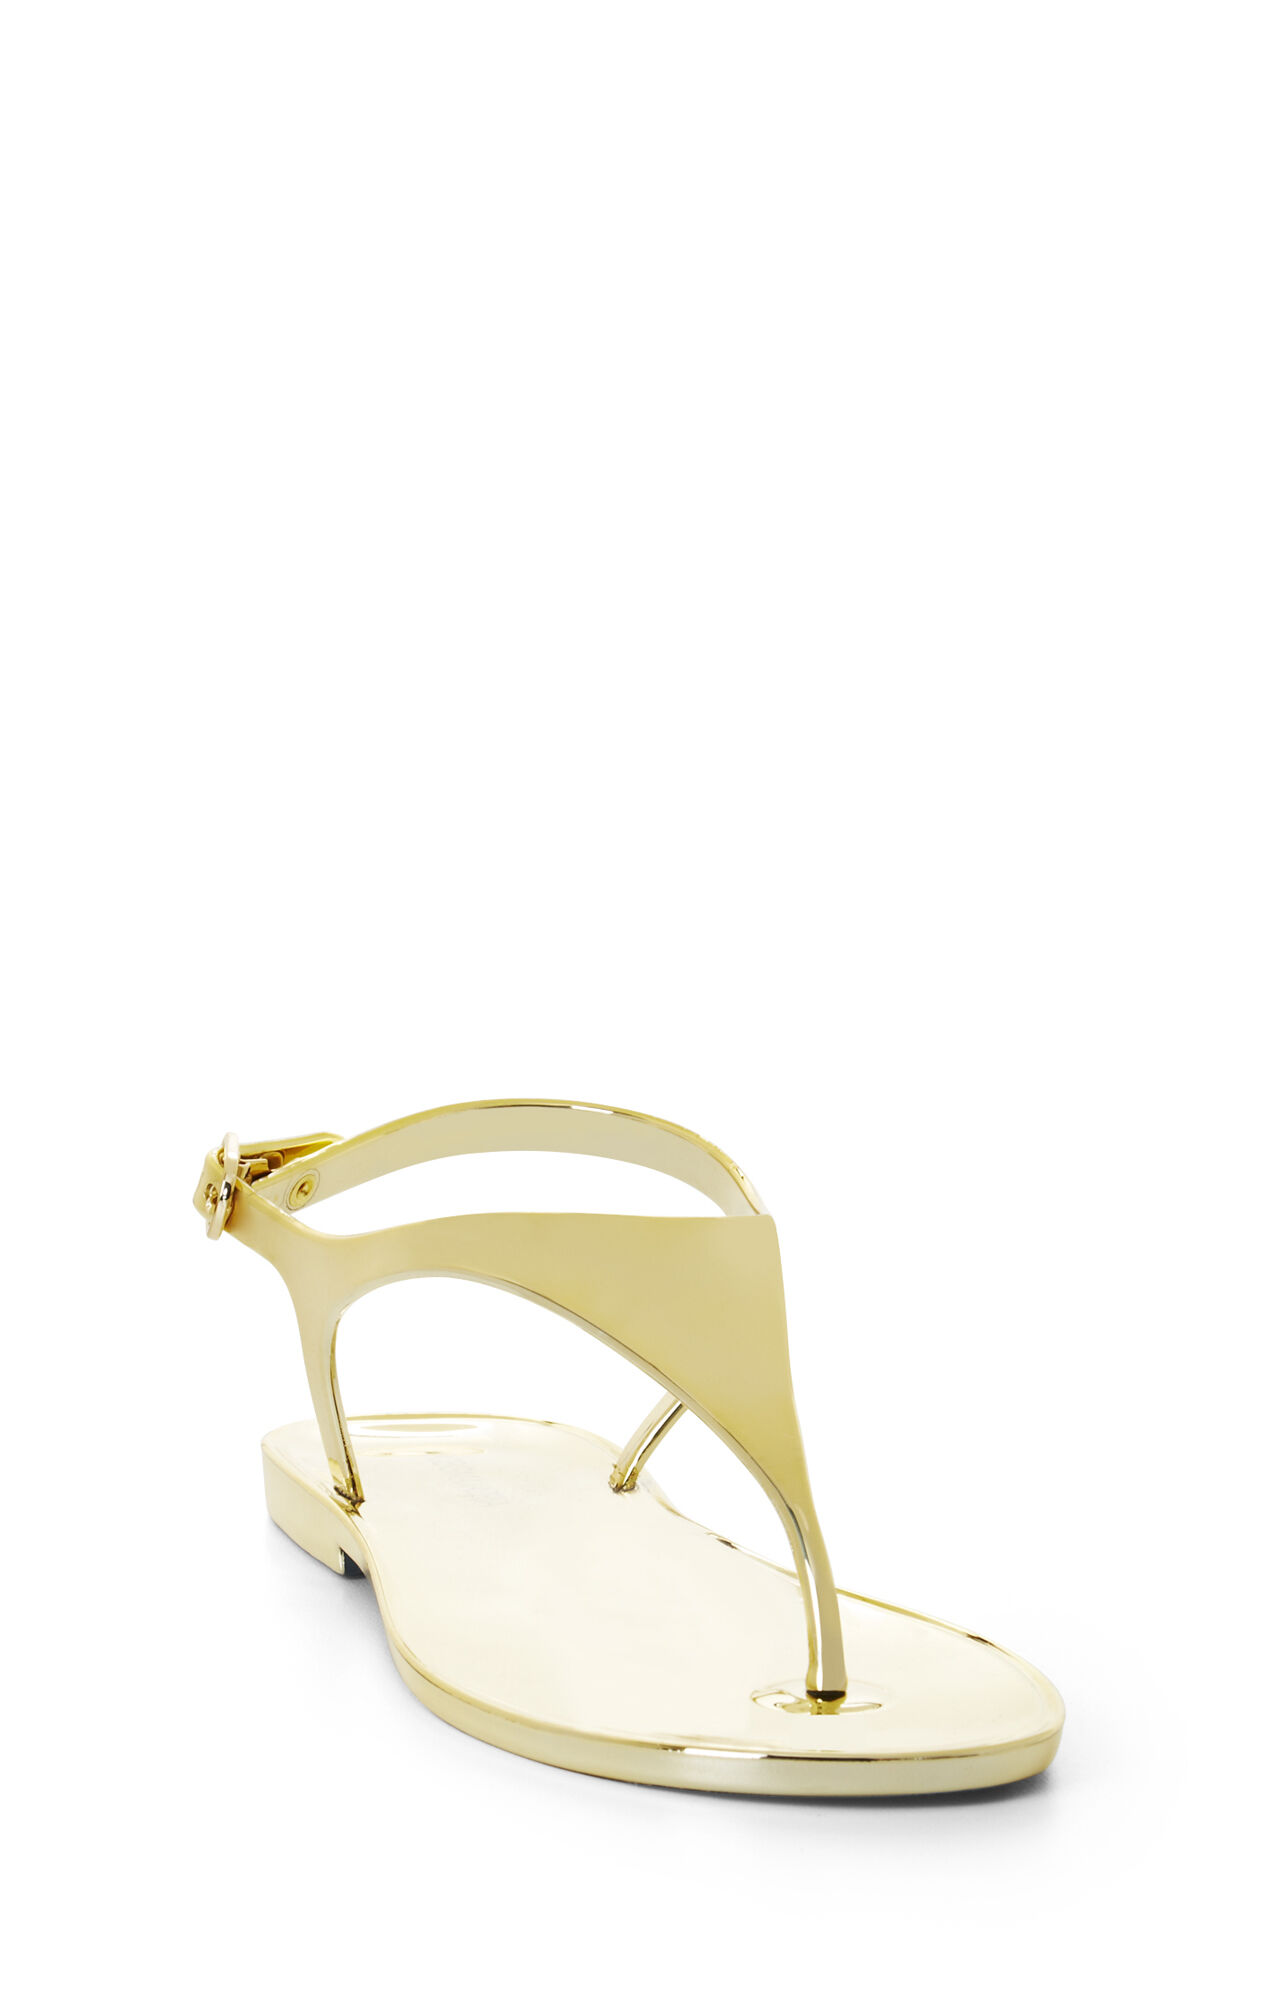 Wish Flat Jelly Sandal